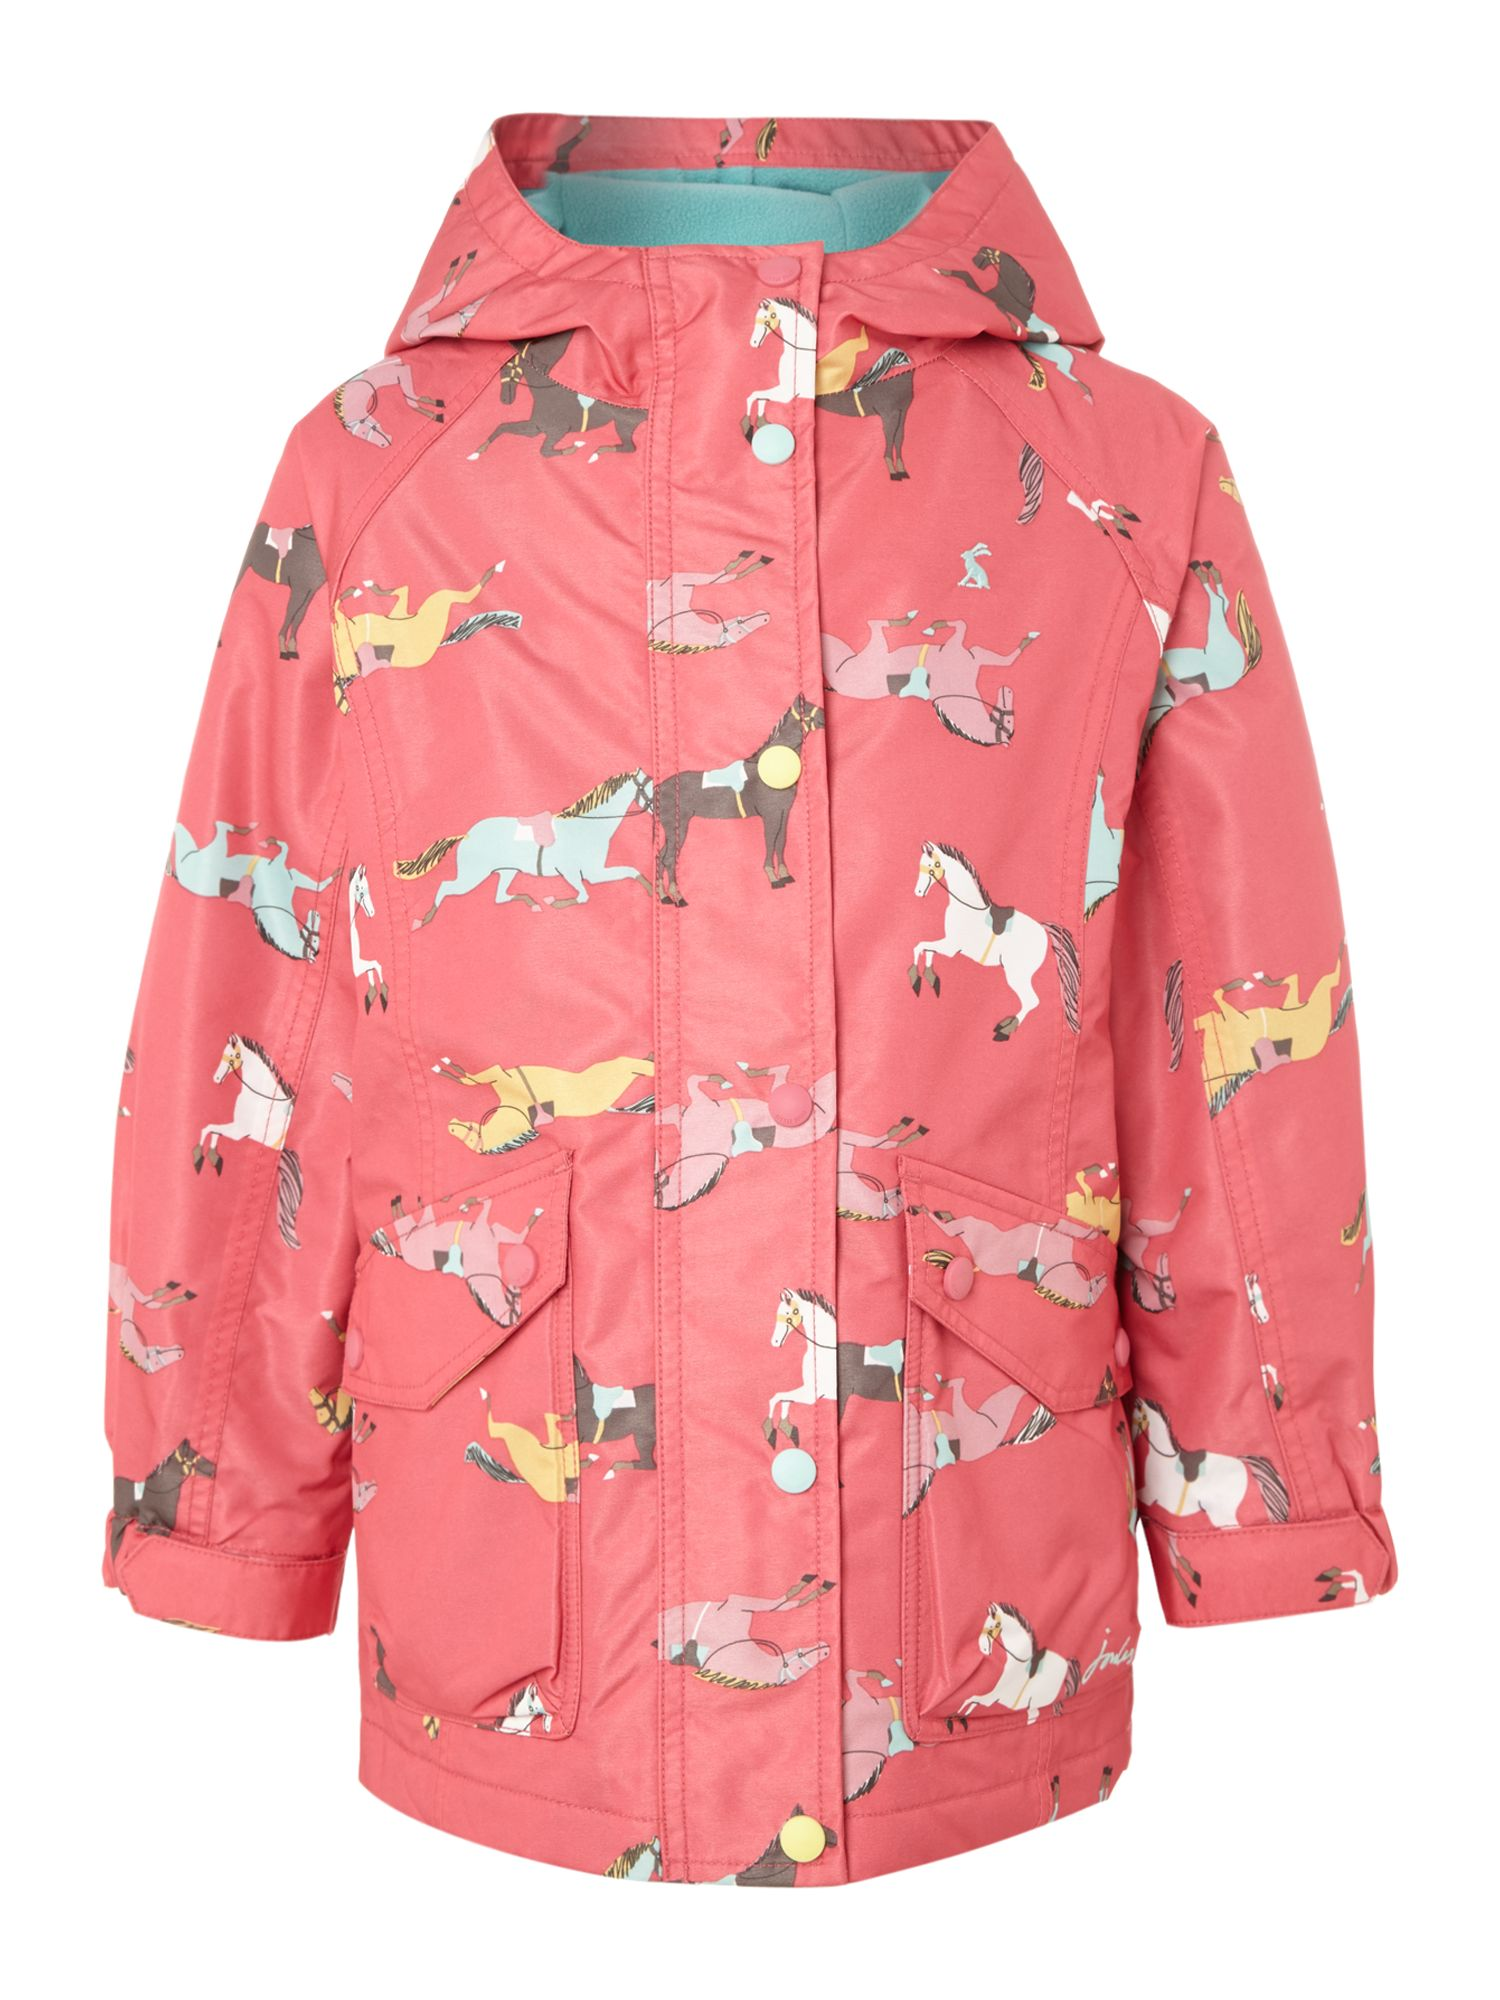 Girls pony print coat